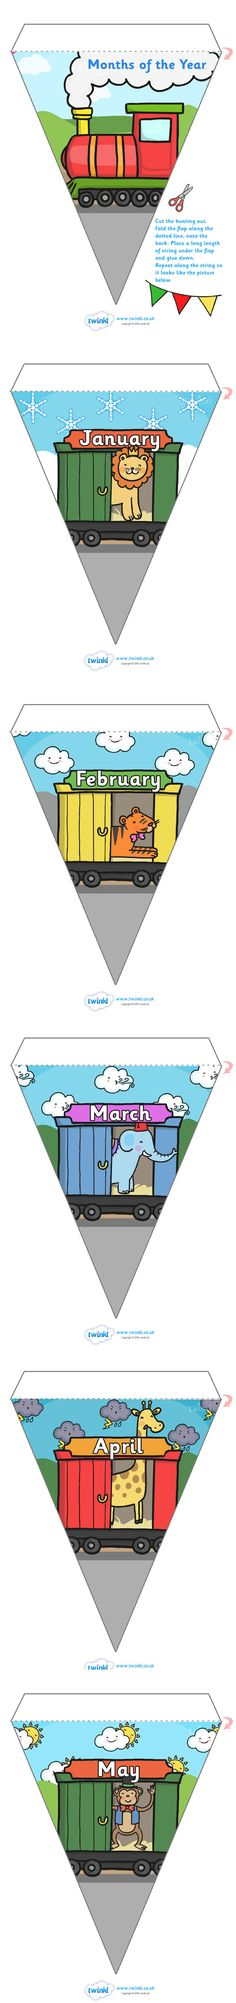 Twinkl Resources >> Months of the Year Animal Train on Bunting Weather Background  >> Classroom printables for Pre-School, Kindergarten, Elementary School and beyond! Buntings, Weather, Calendar, Seasons, Class Management